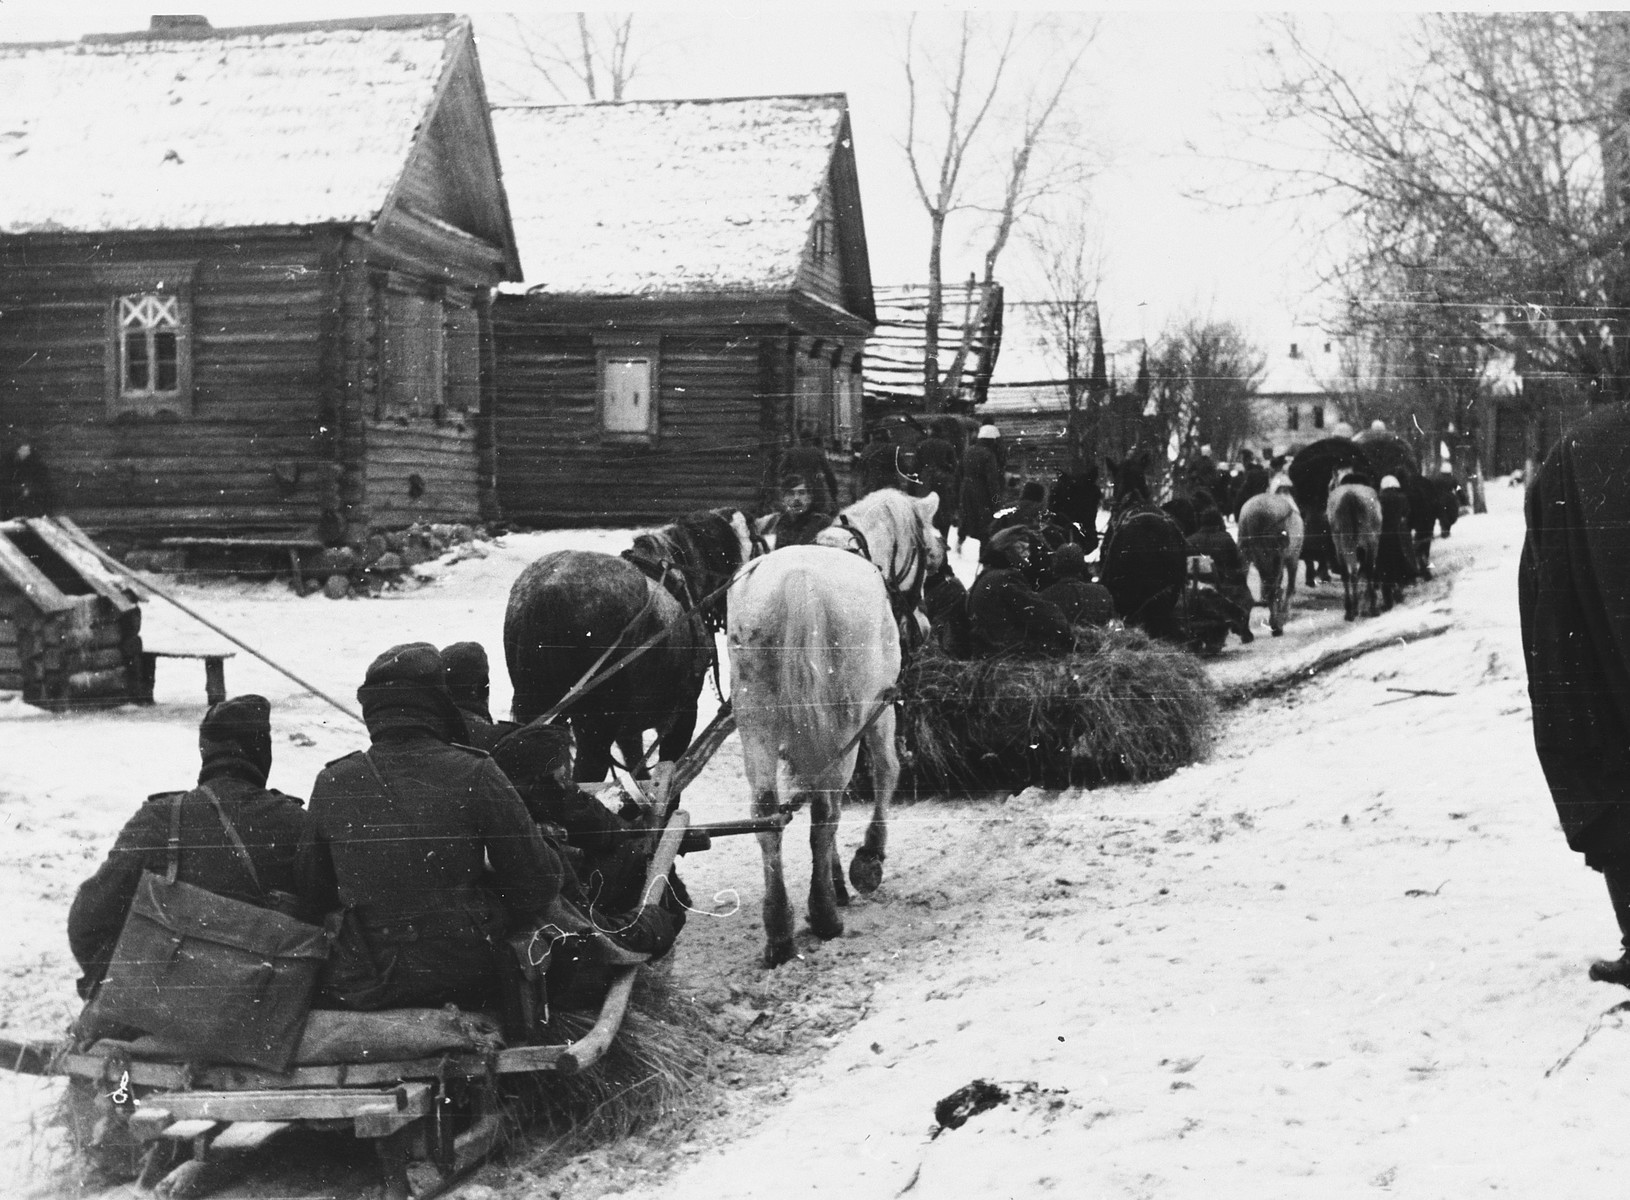 German soldiers ride in a caravan of horse-drawn sleighs past wooden homes in a village [probably in the Soviet Union].